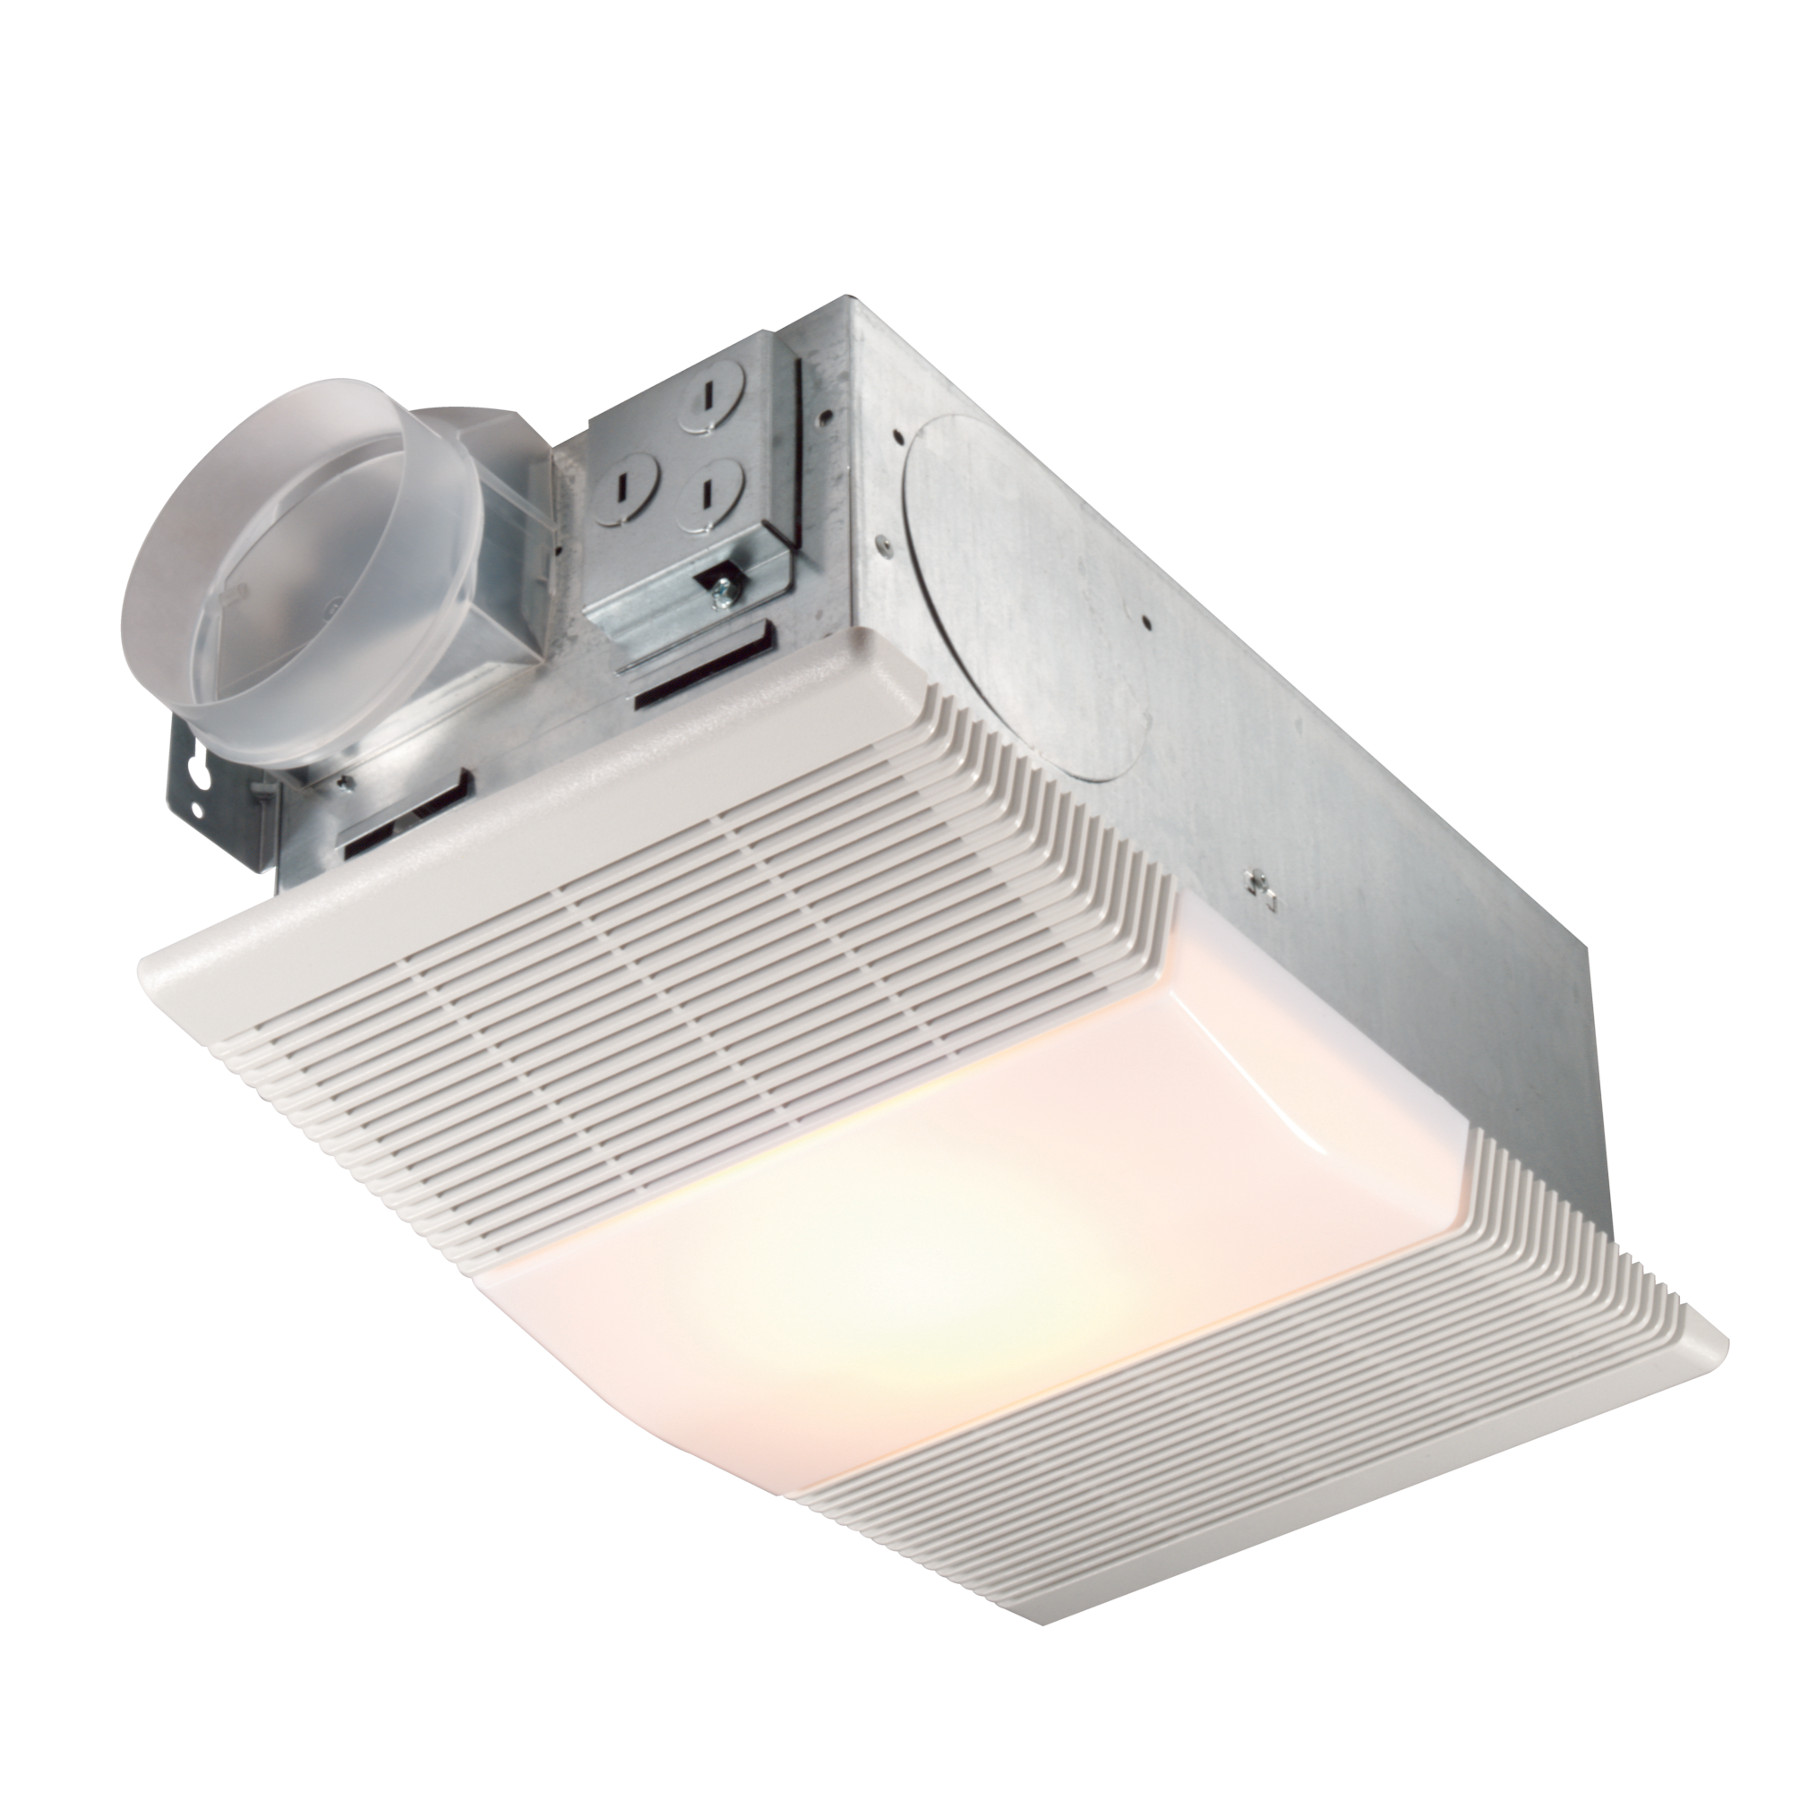 Ventilation Fan With Heater And Light, Bathroom Vent Fan With Heater